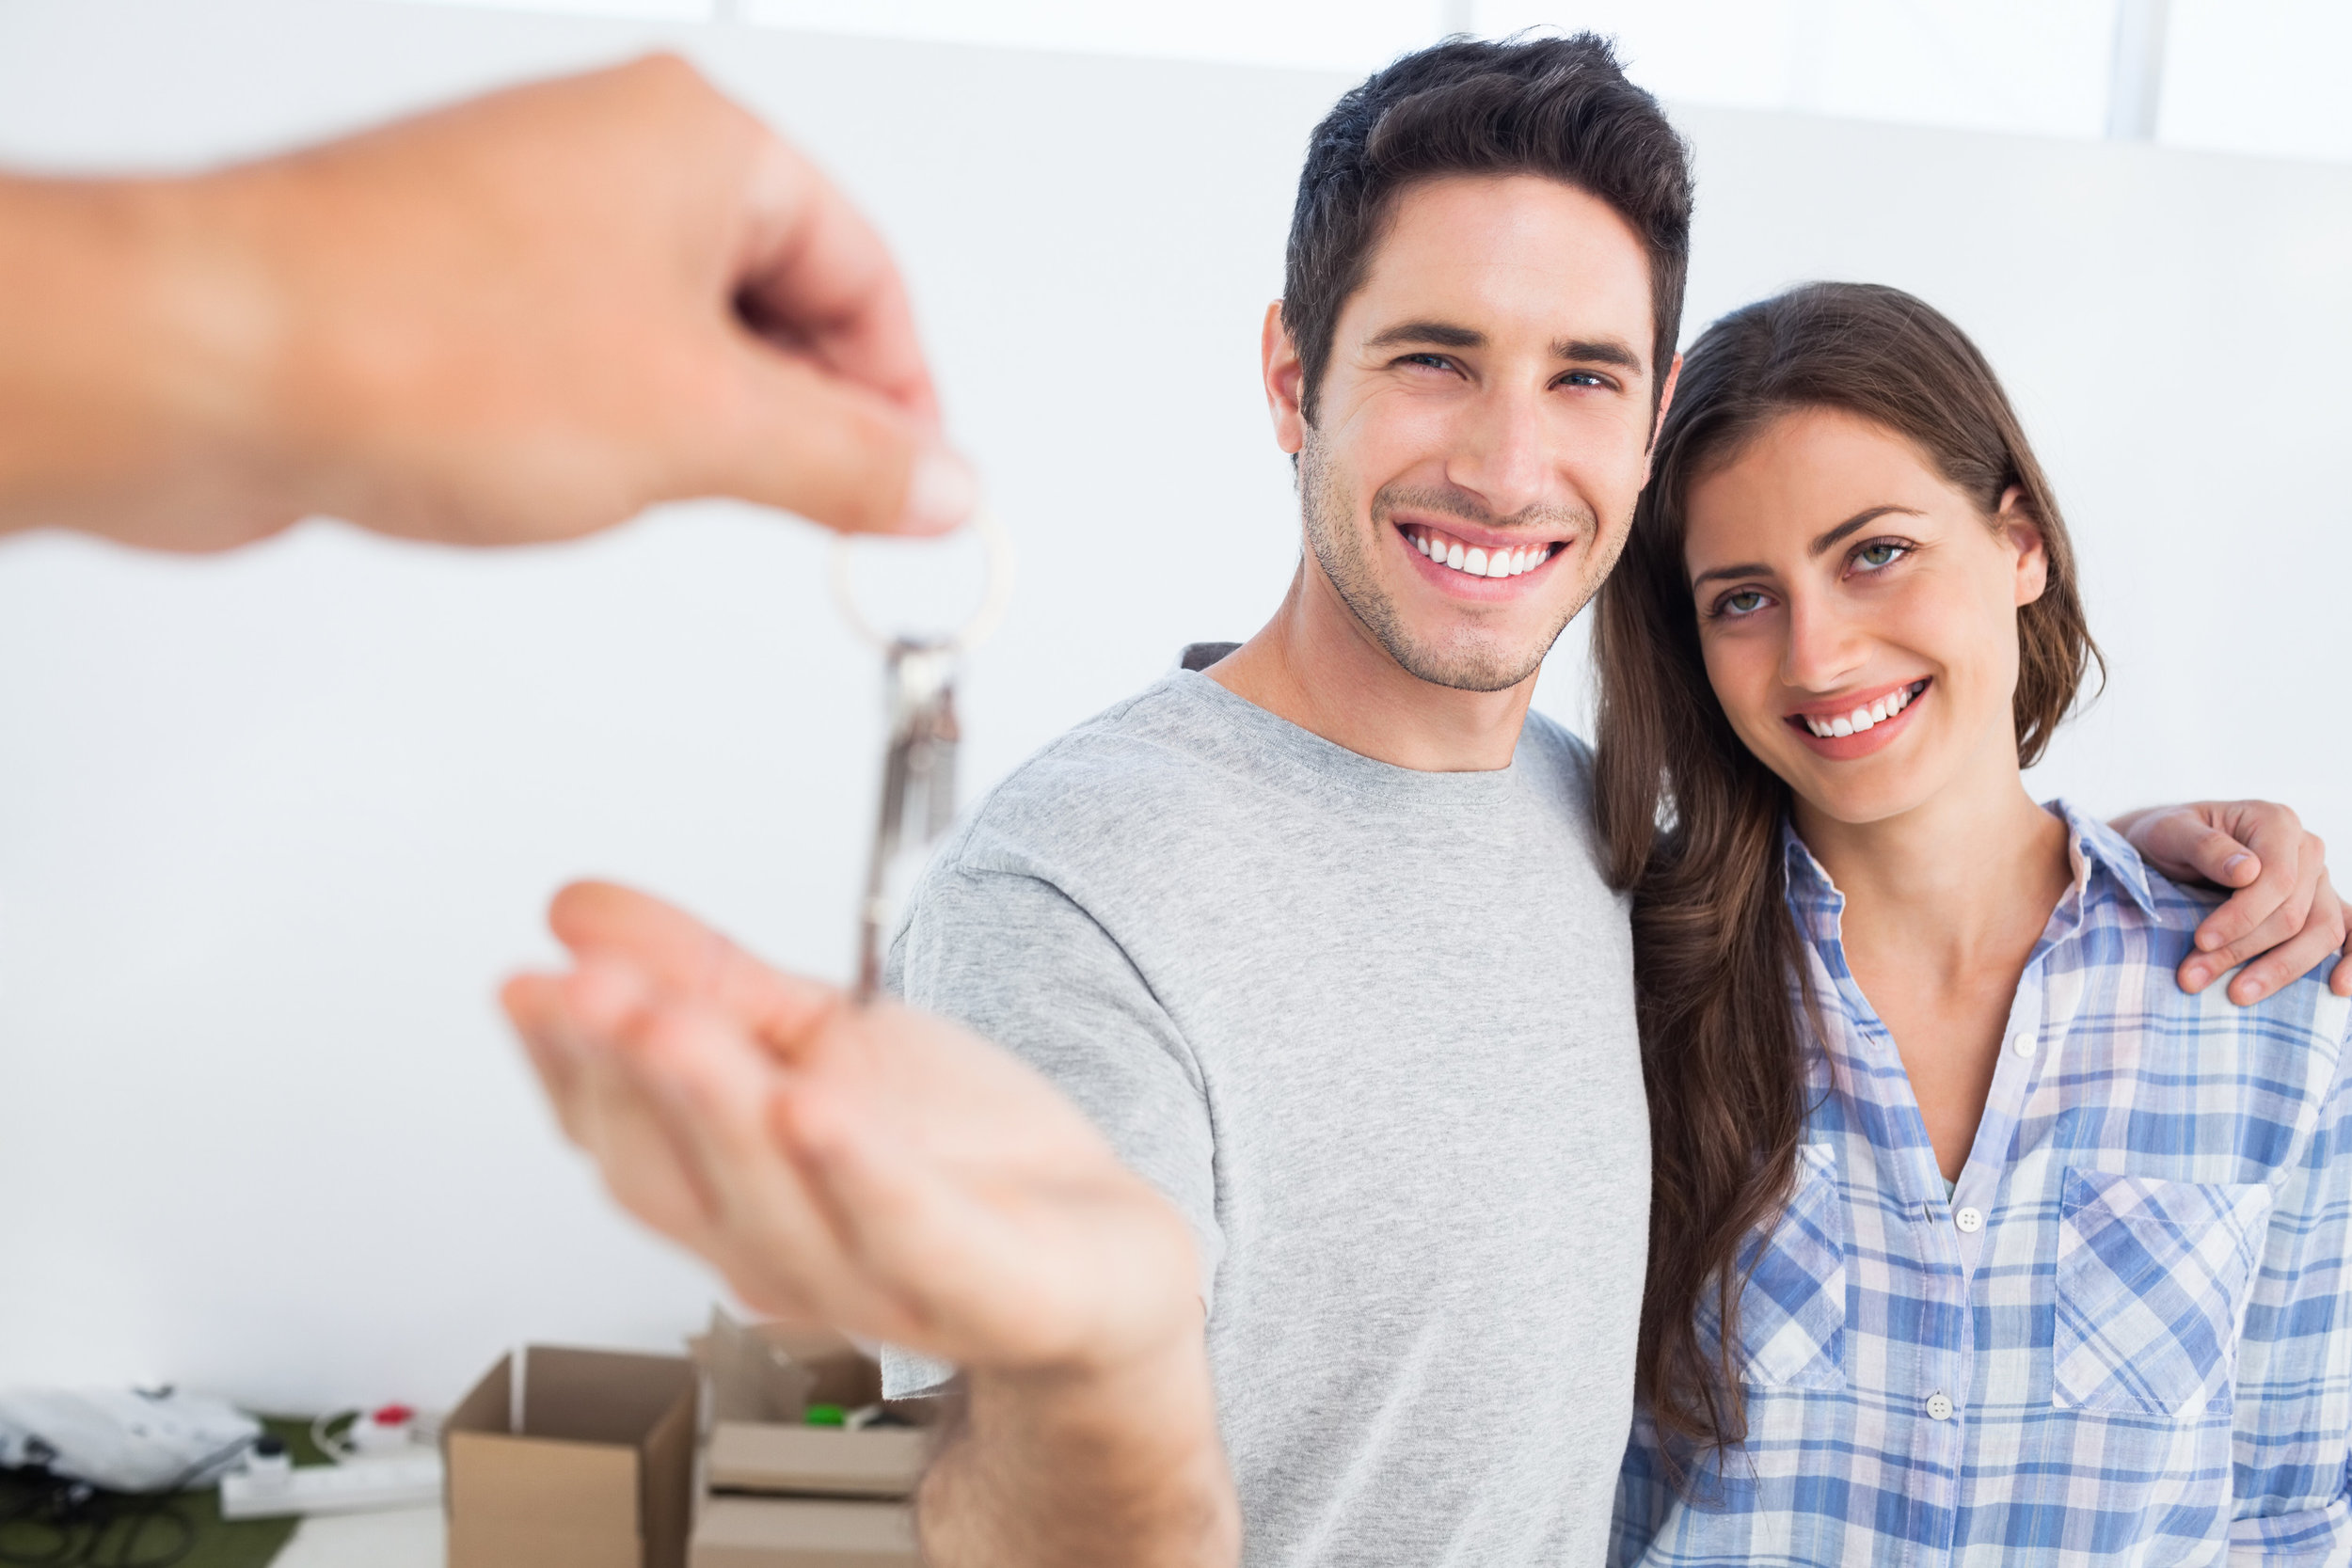 Buying? - Central Florida homes are selling. Our team of local expert Realtors are ready to help you buy a home at the best possible price.Learn More...